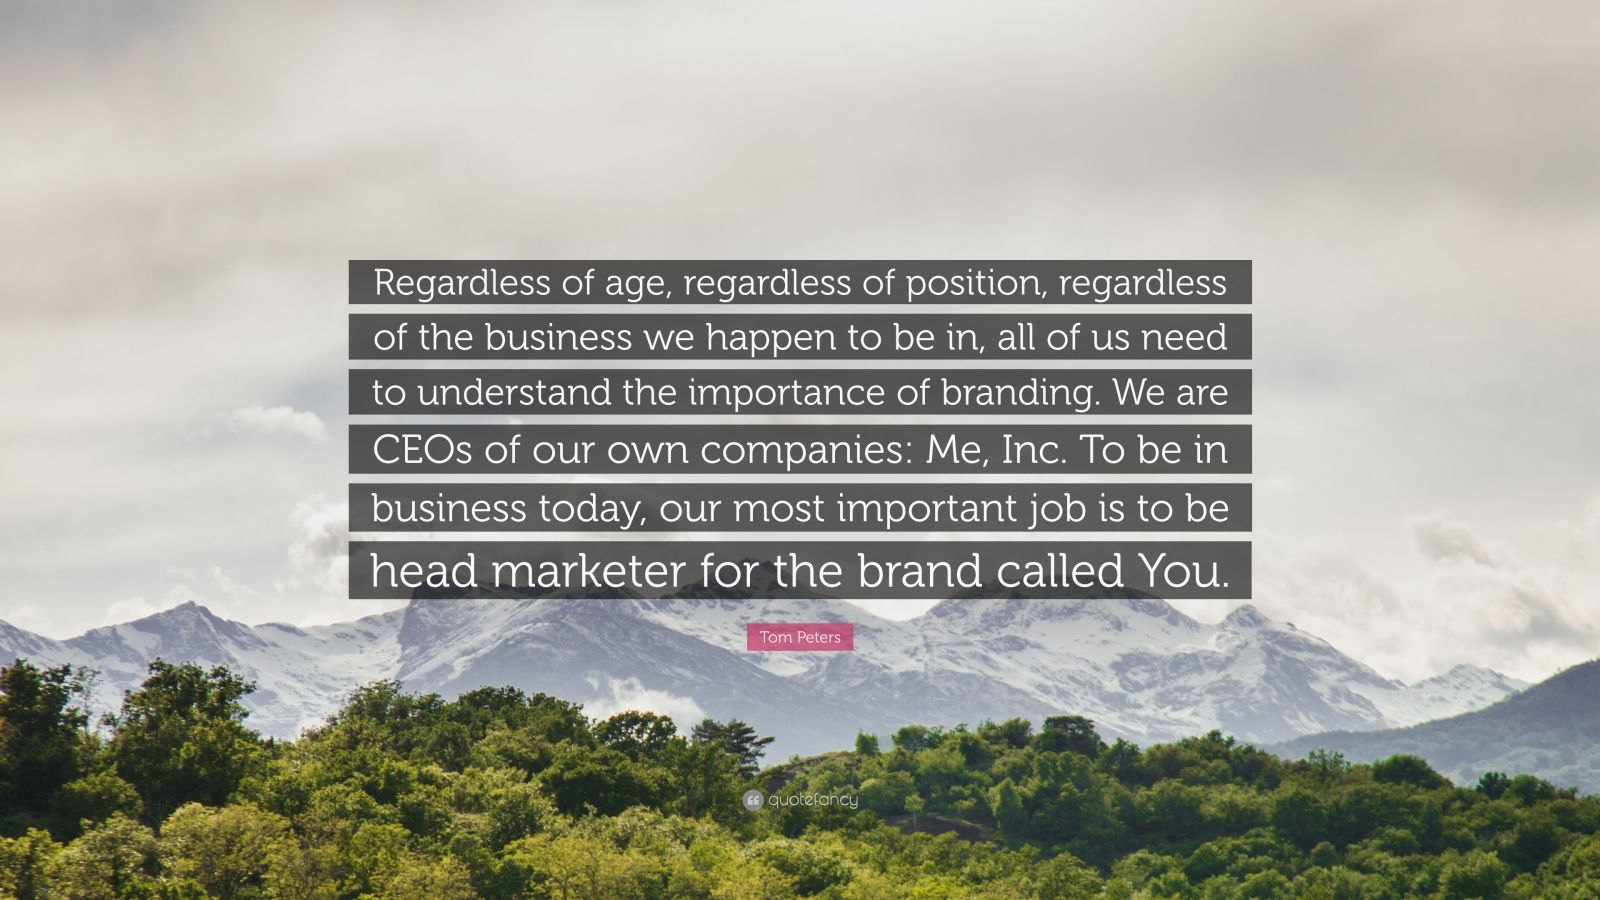 """Tom Peters Quote: """"Regardless of age, regardless of position, regardless of the business we happen to be in, all of us need to understand the importance of branding. We are CEOs of our own companies: Me, Inc. To be in business today, our most important job is to be head marketer for the brand called You."""""""